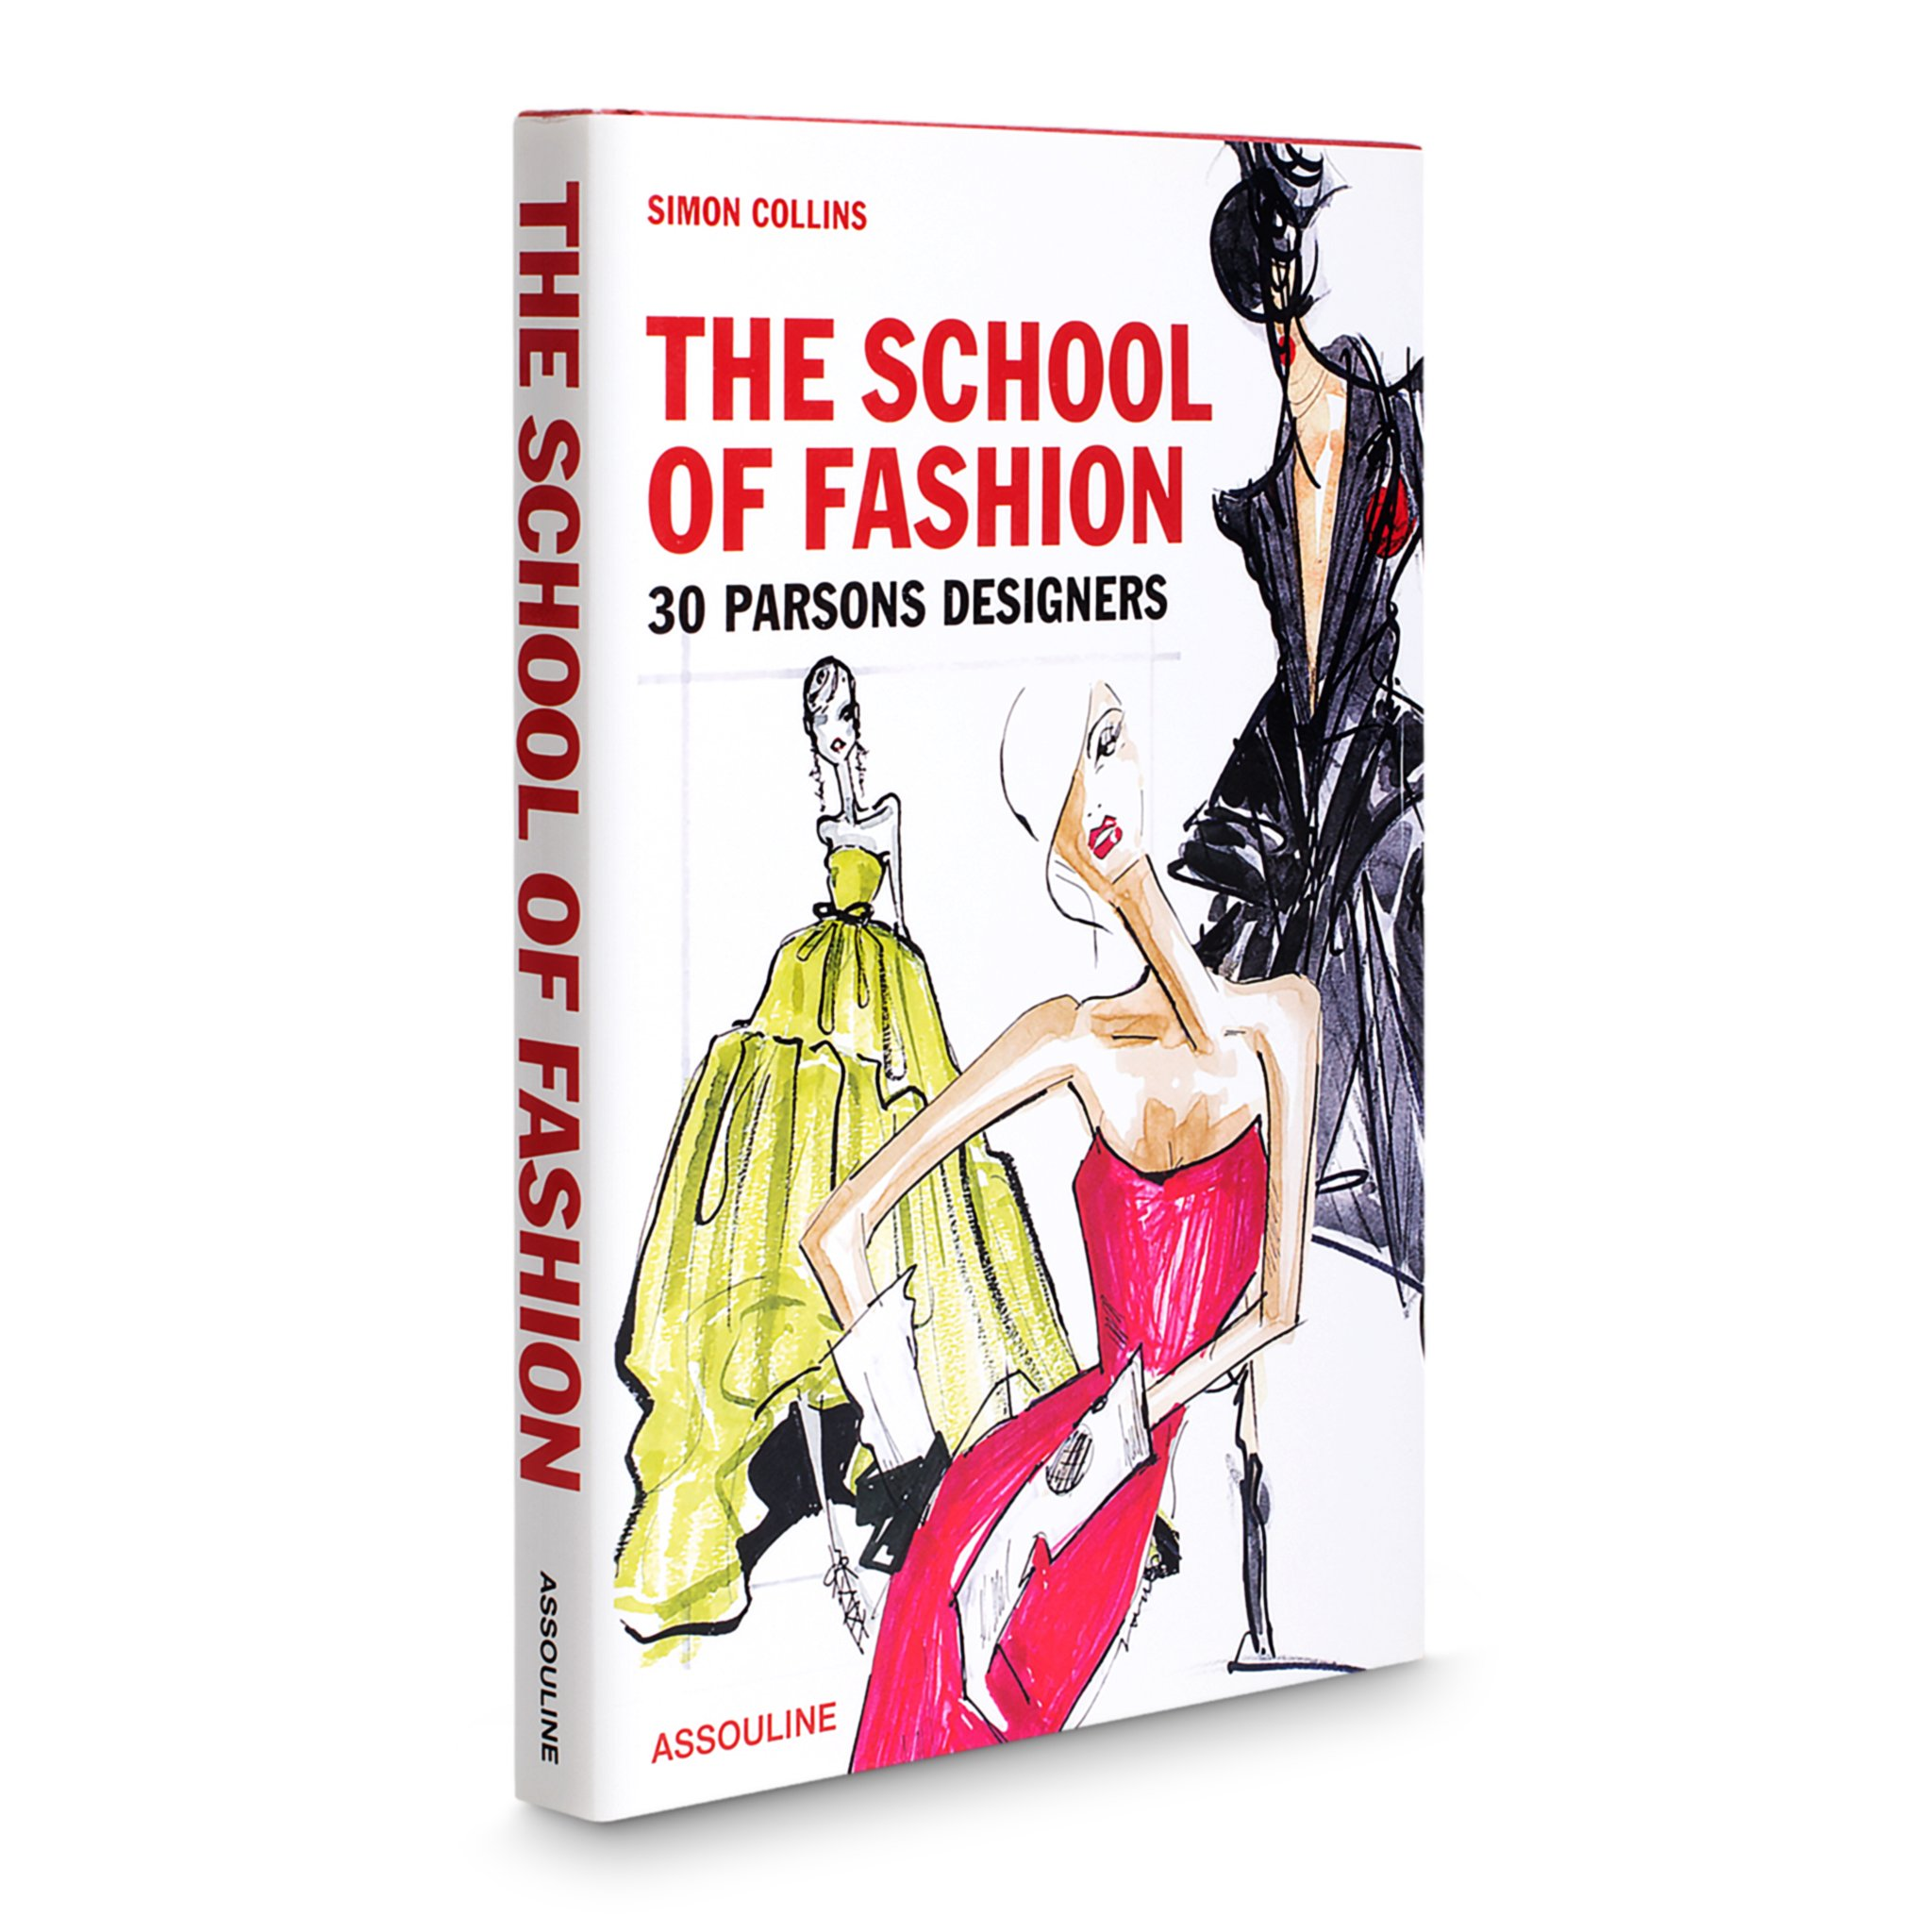 fashion design books for fashion students the best design books School of Fashion, 30 Parsons Designers (Trade) Hardcover u2013 April 29, 2014